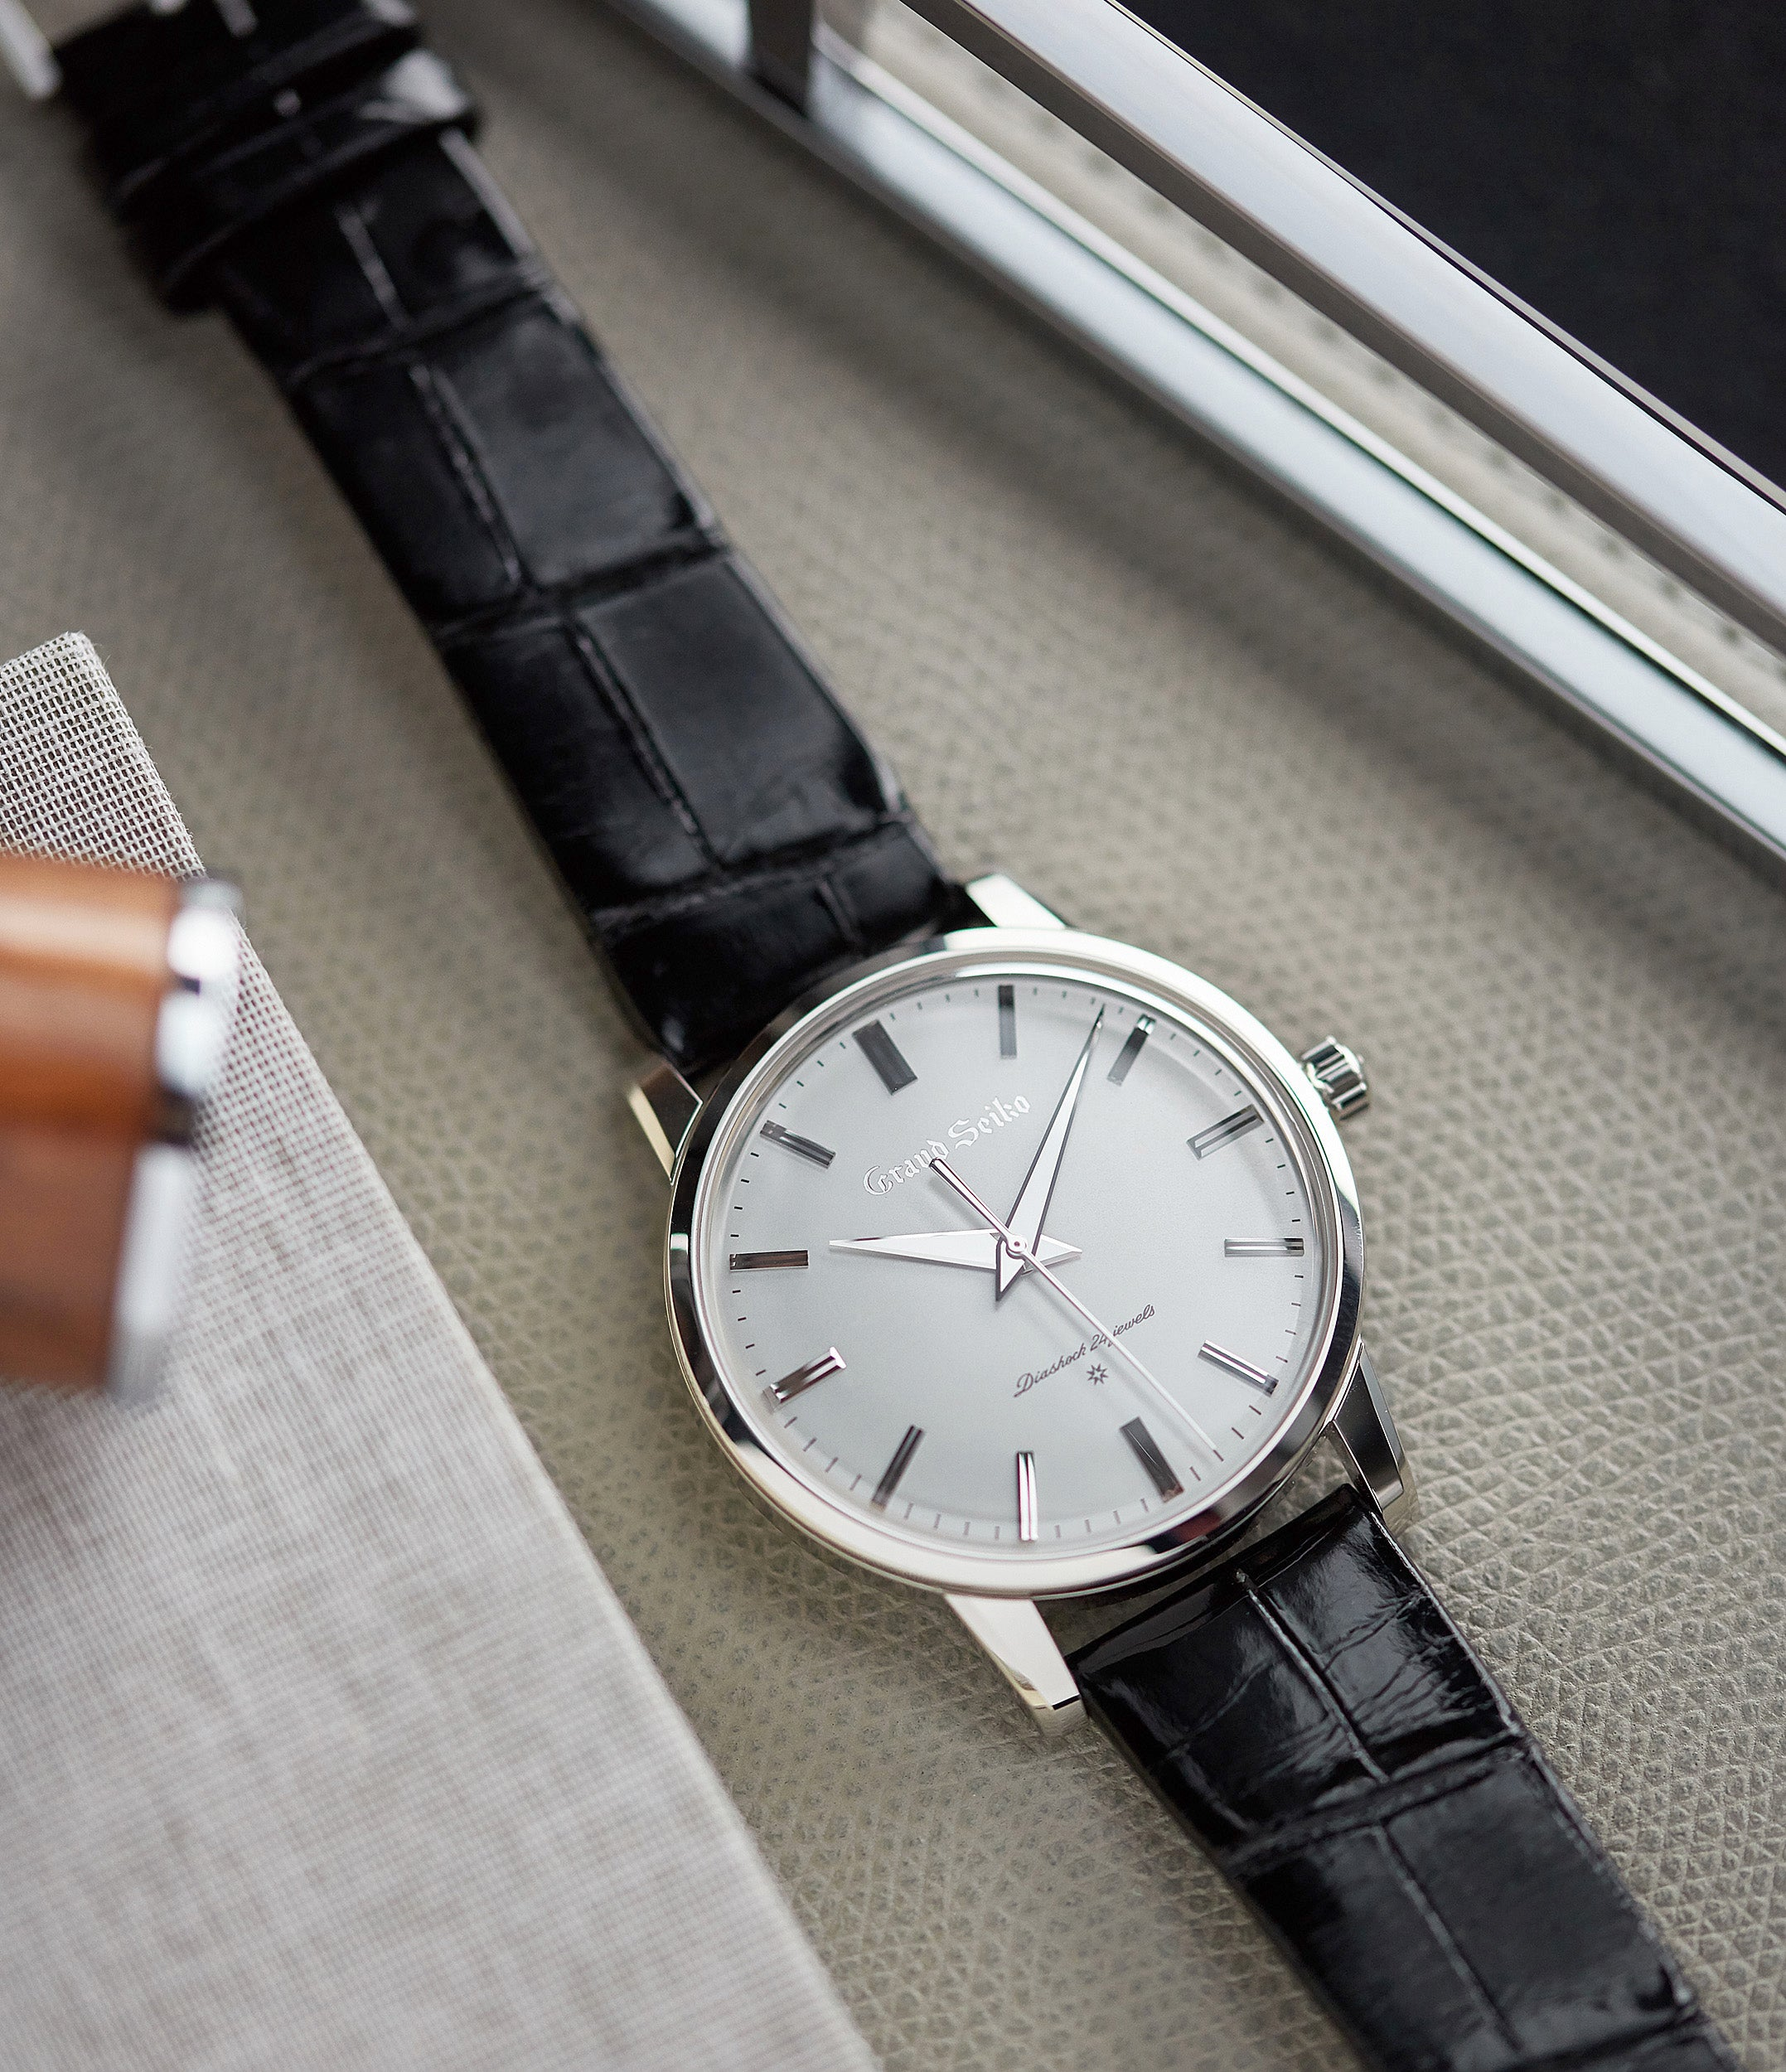 pre-owned Grand Seiko SBGW251 limited edition platinum time-only dress watch Japanese-made full set at A Collected Man London UK specialist of rare watches